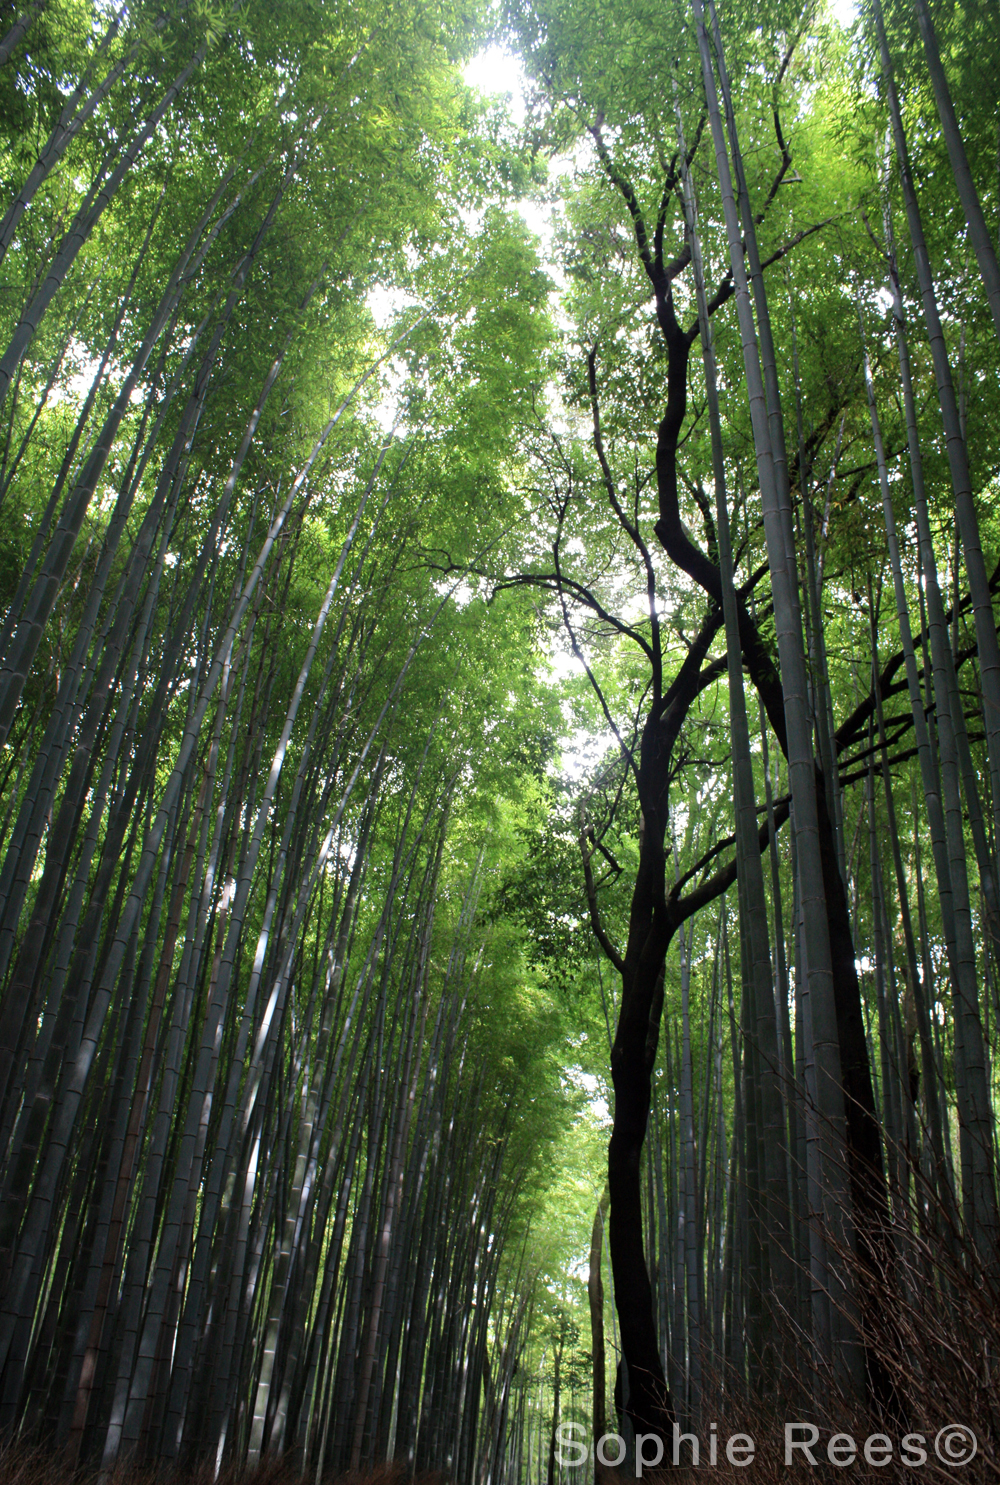 Bamboo forest, Kyoto, 2016